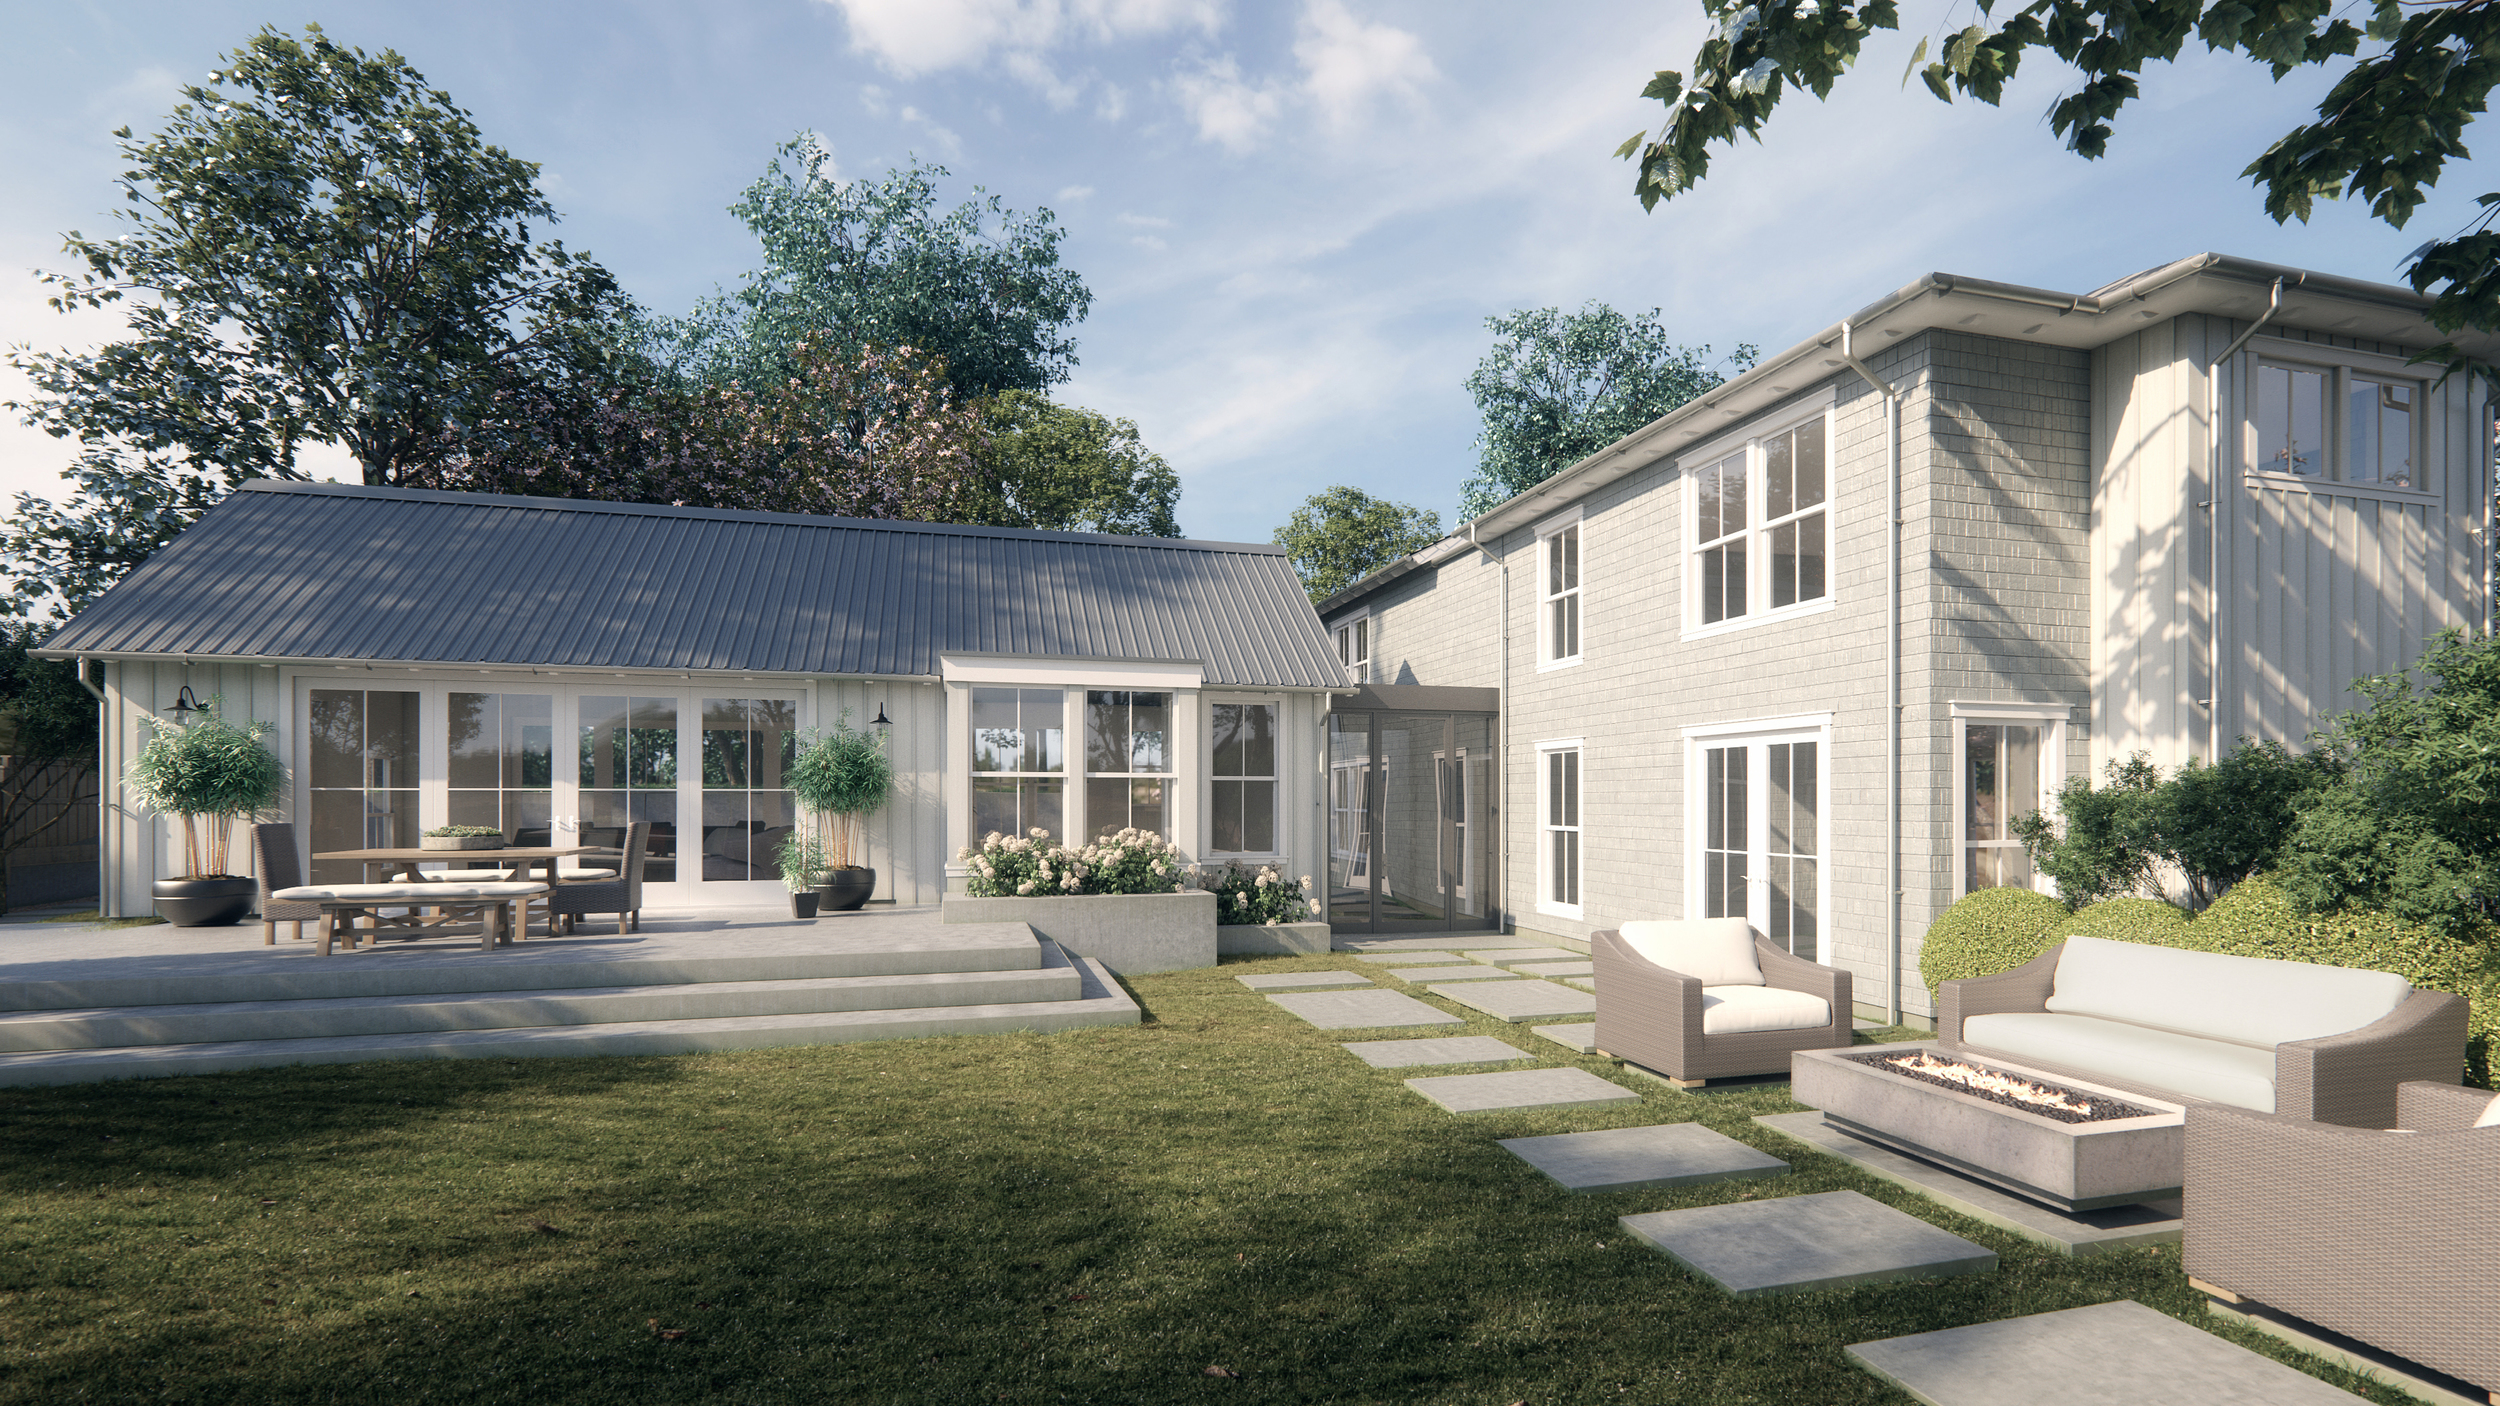 Specializing In Photo-Real Architectural Renderings  Professional